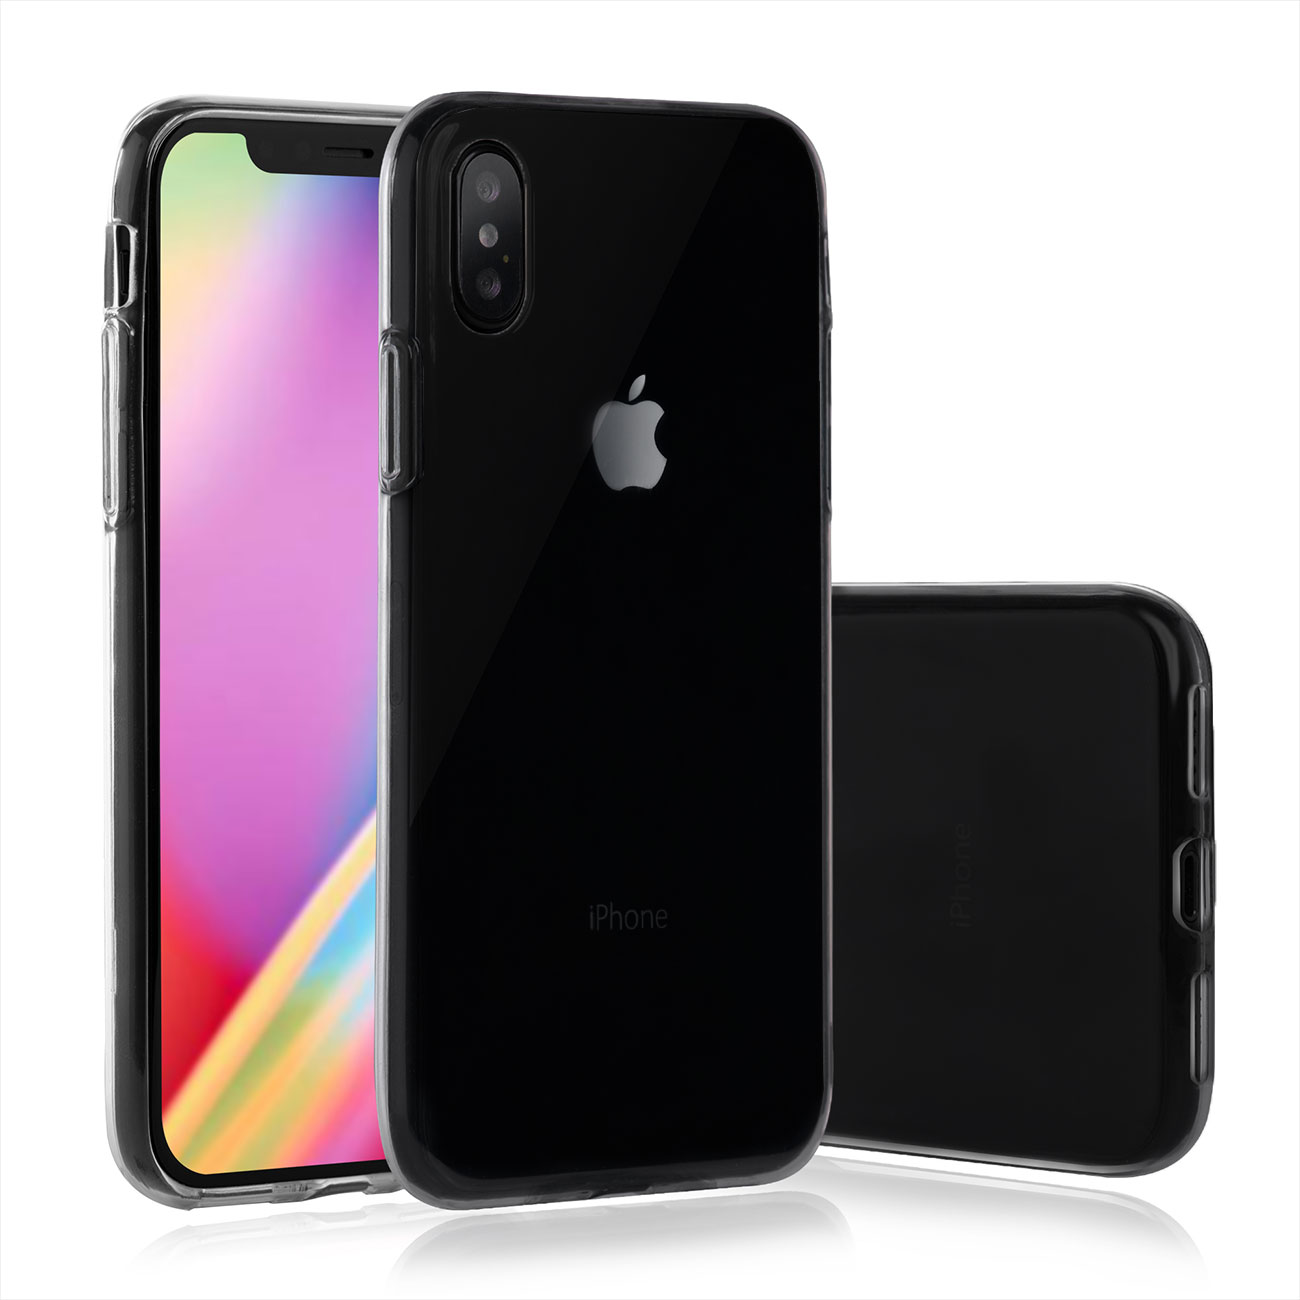 mututec iphone x apple phone case soft tpu transparent. Black Bedroom Furniture Sets. Home Design Ideas